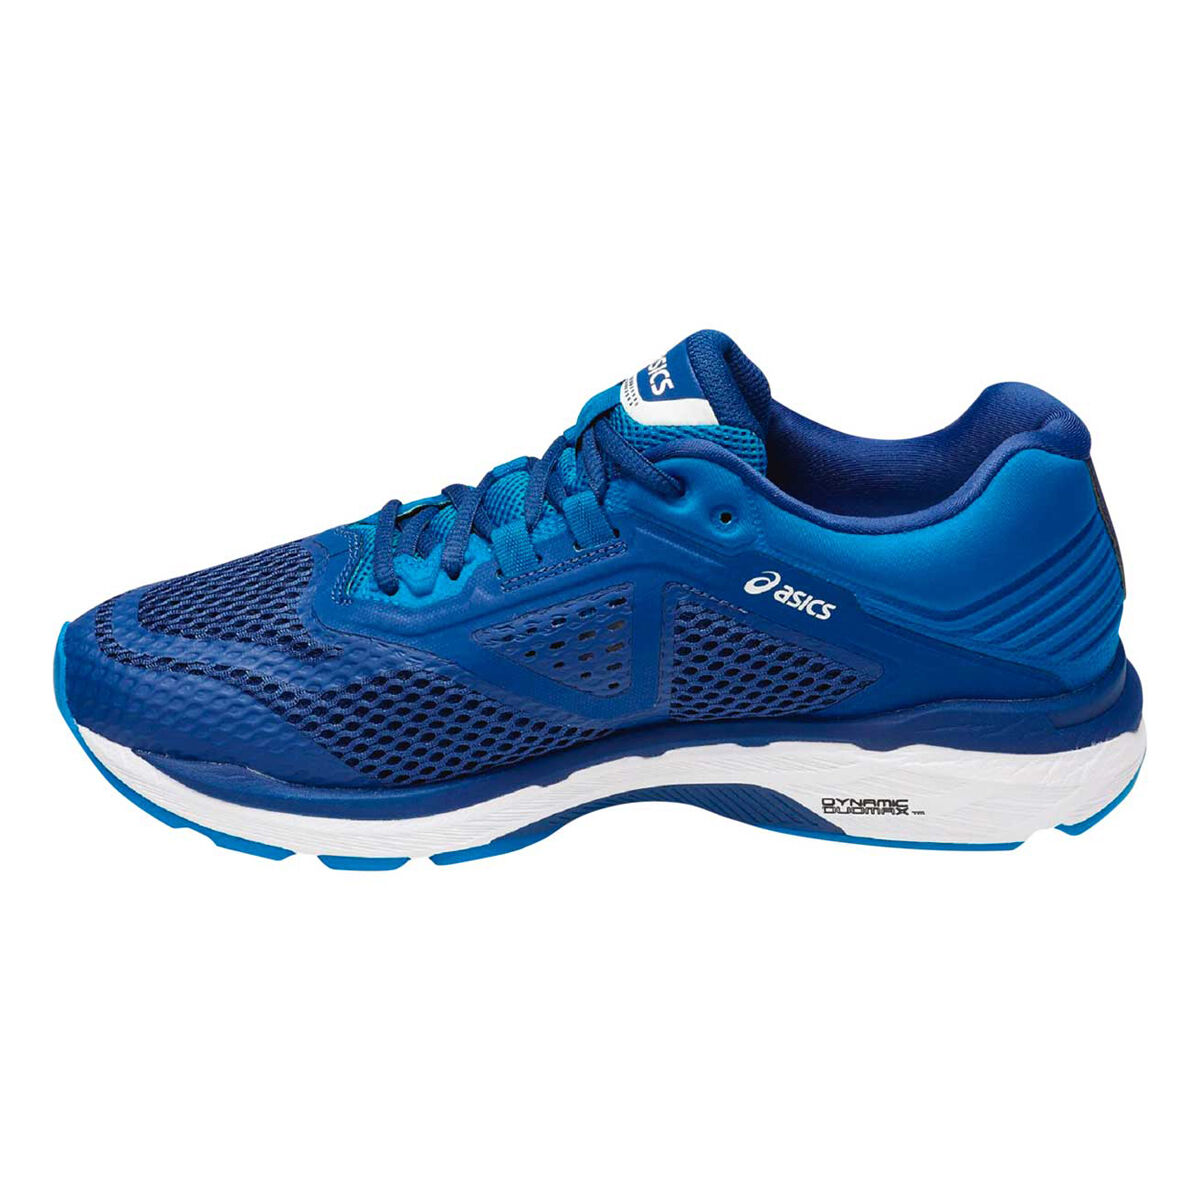 Mens Gt Sport 2e Shoes Asics 2000 Rebel 6 Running 6BCnqI